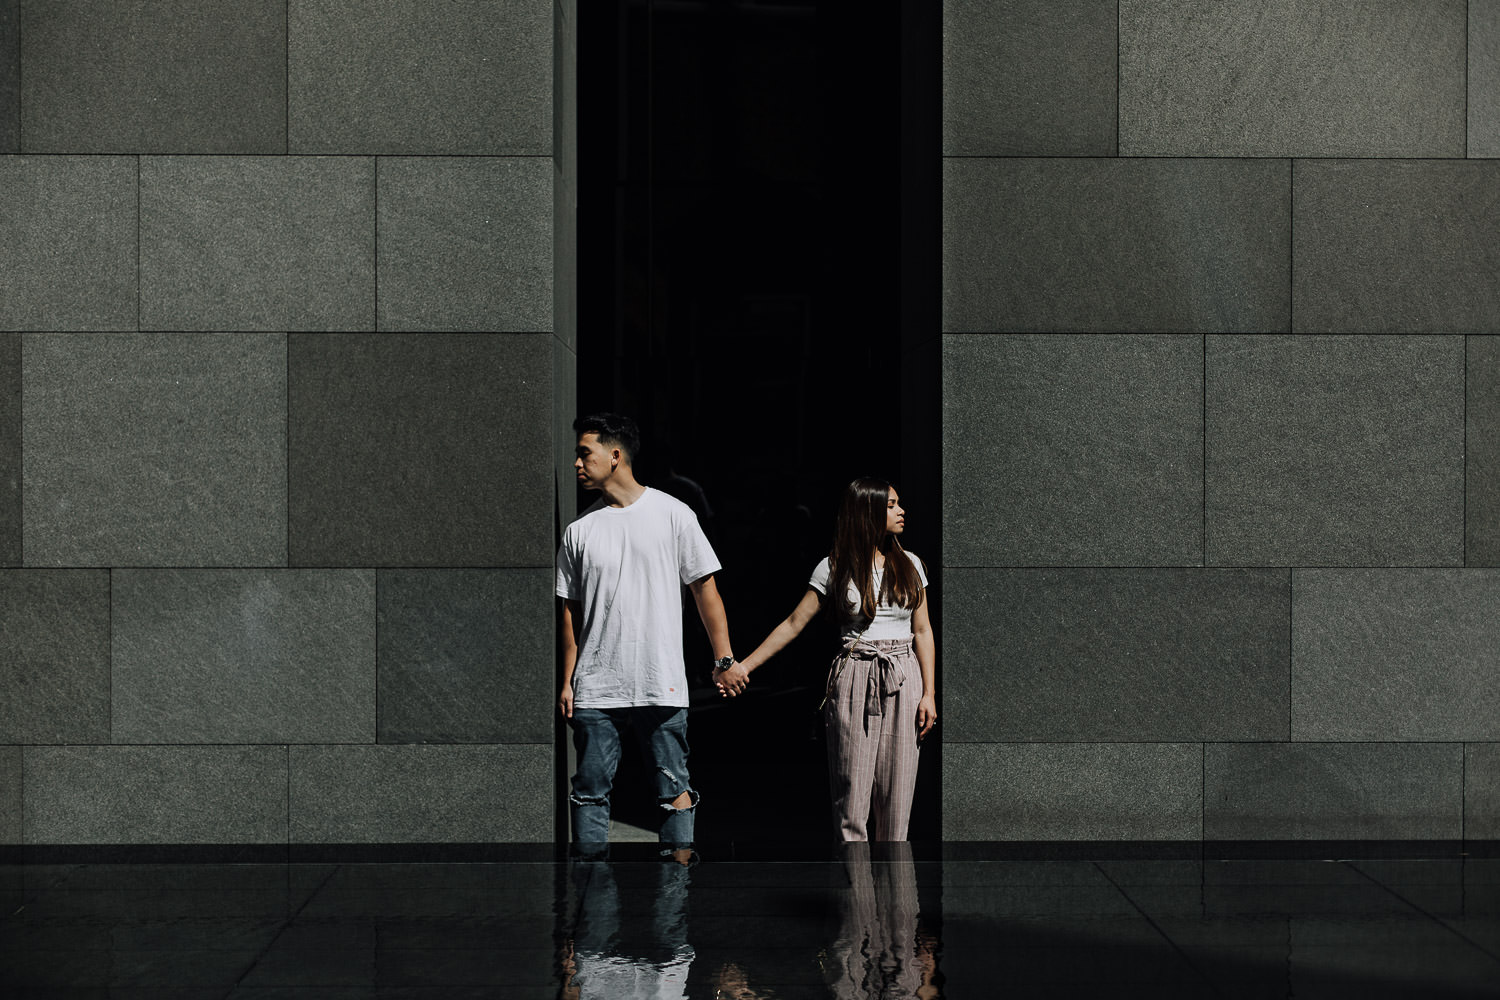 Couple standing in symmetry between granite walls